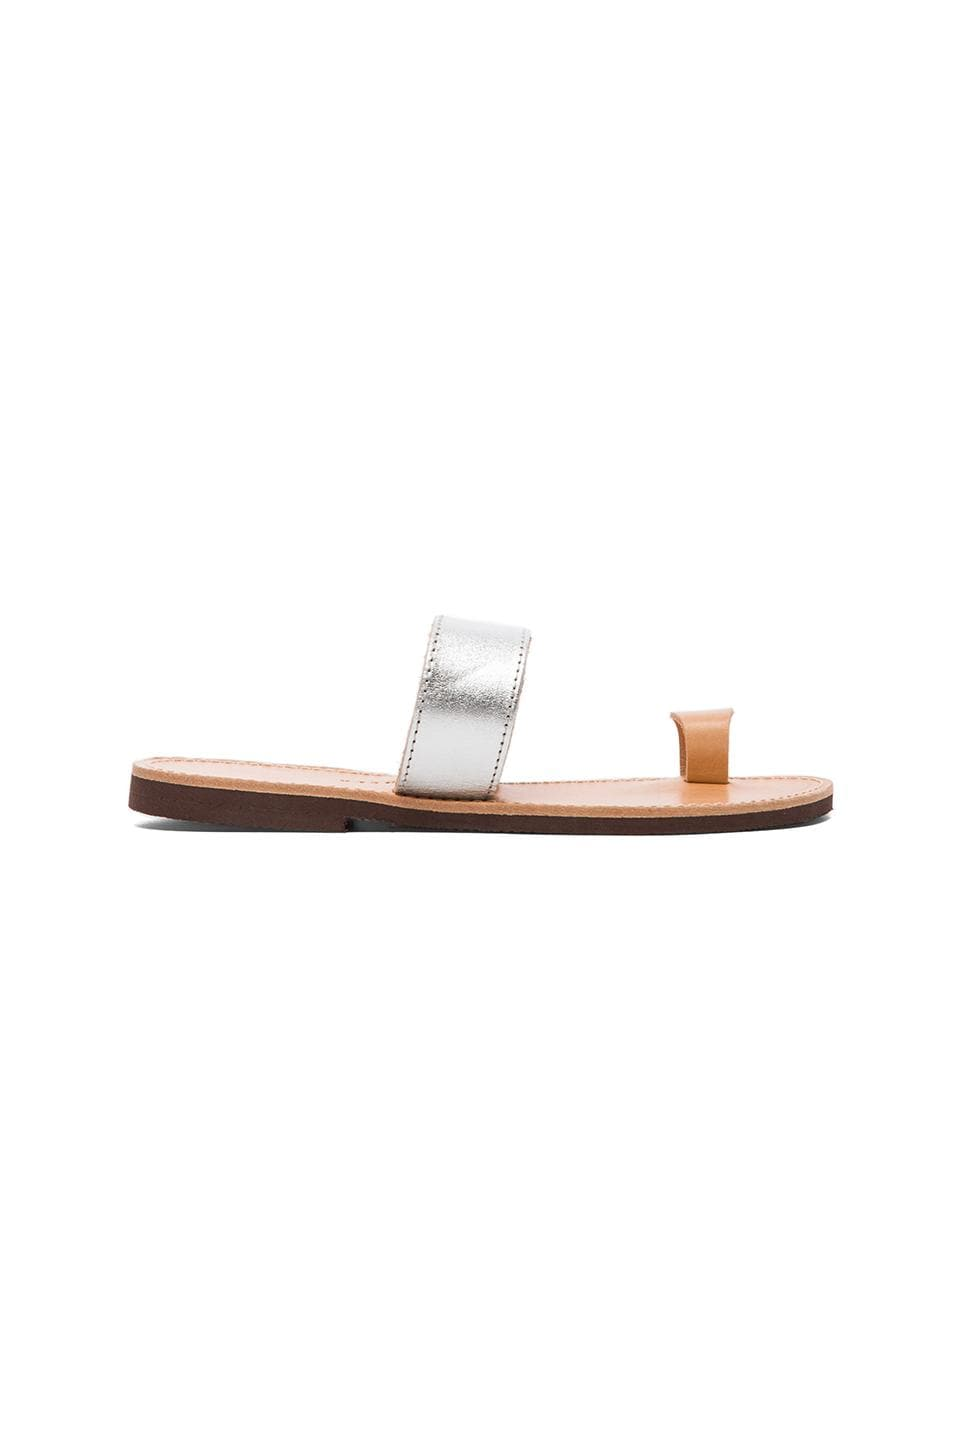 isapera Elia Sandal in Silver